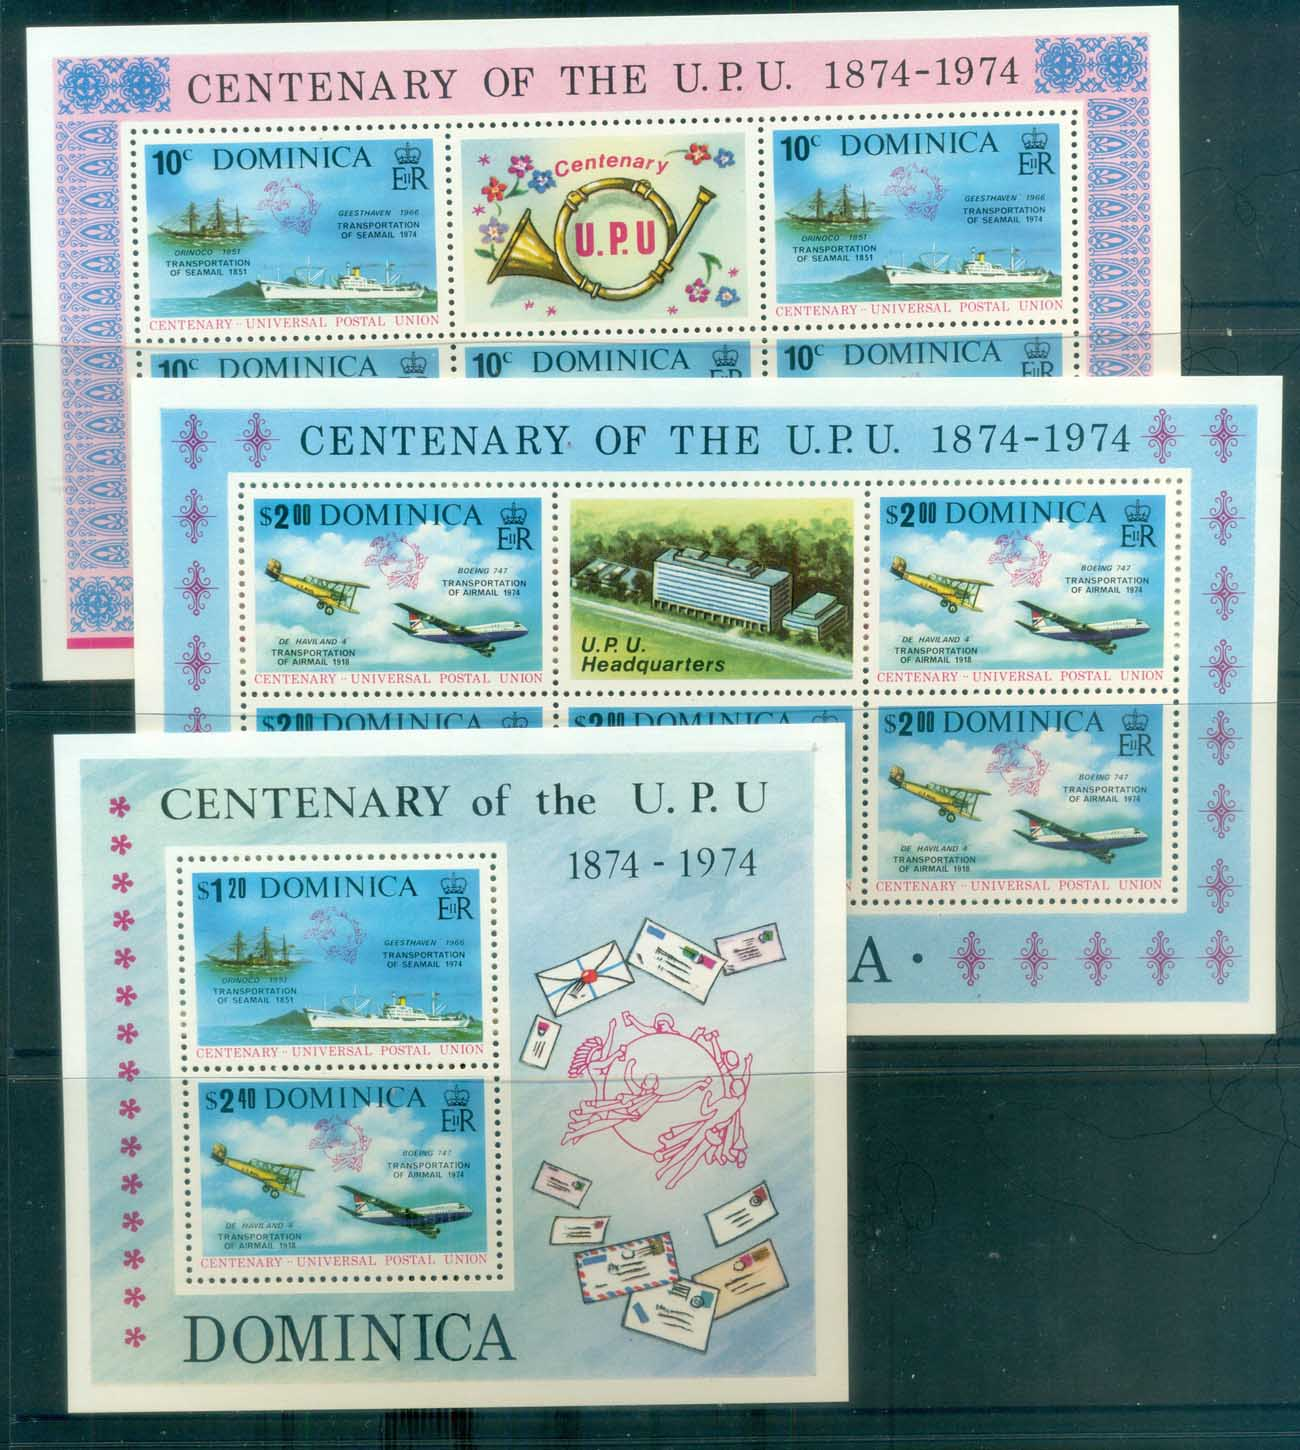 Dominica 1974 Centenary of UPU 3xMS MUH lot76369